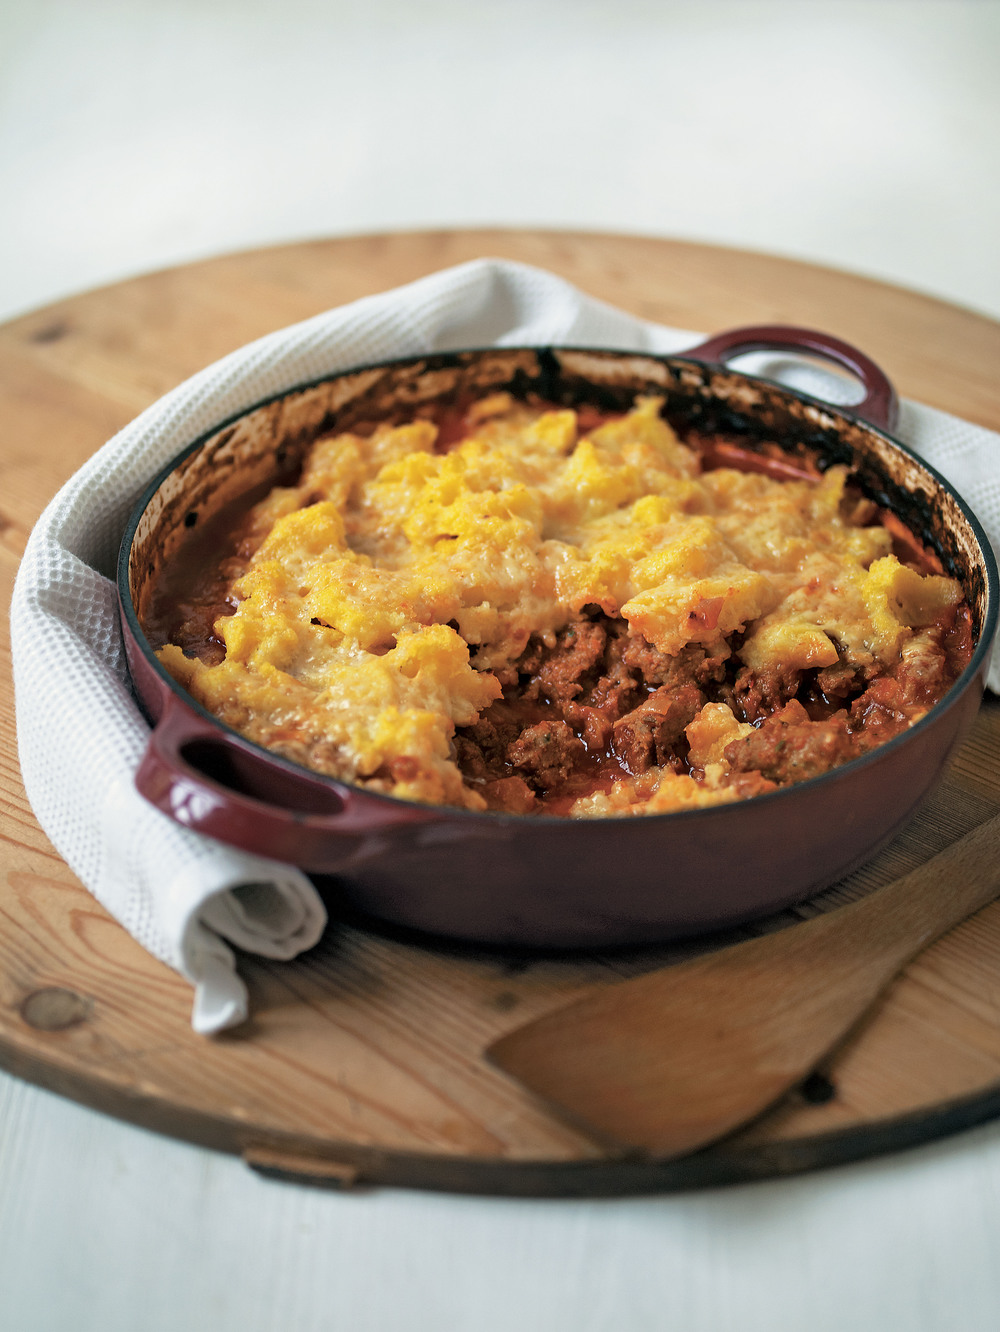 Sausage Ragu with Polenta Crust recipe